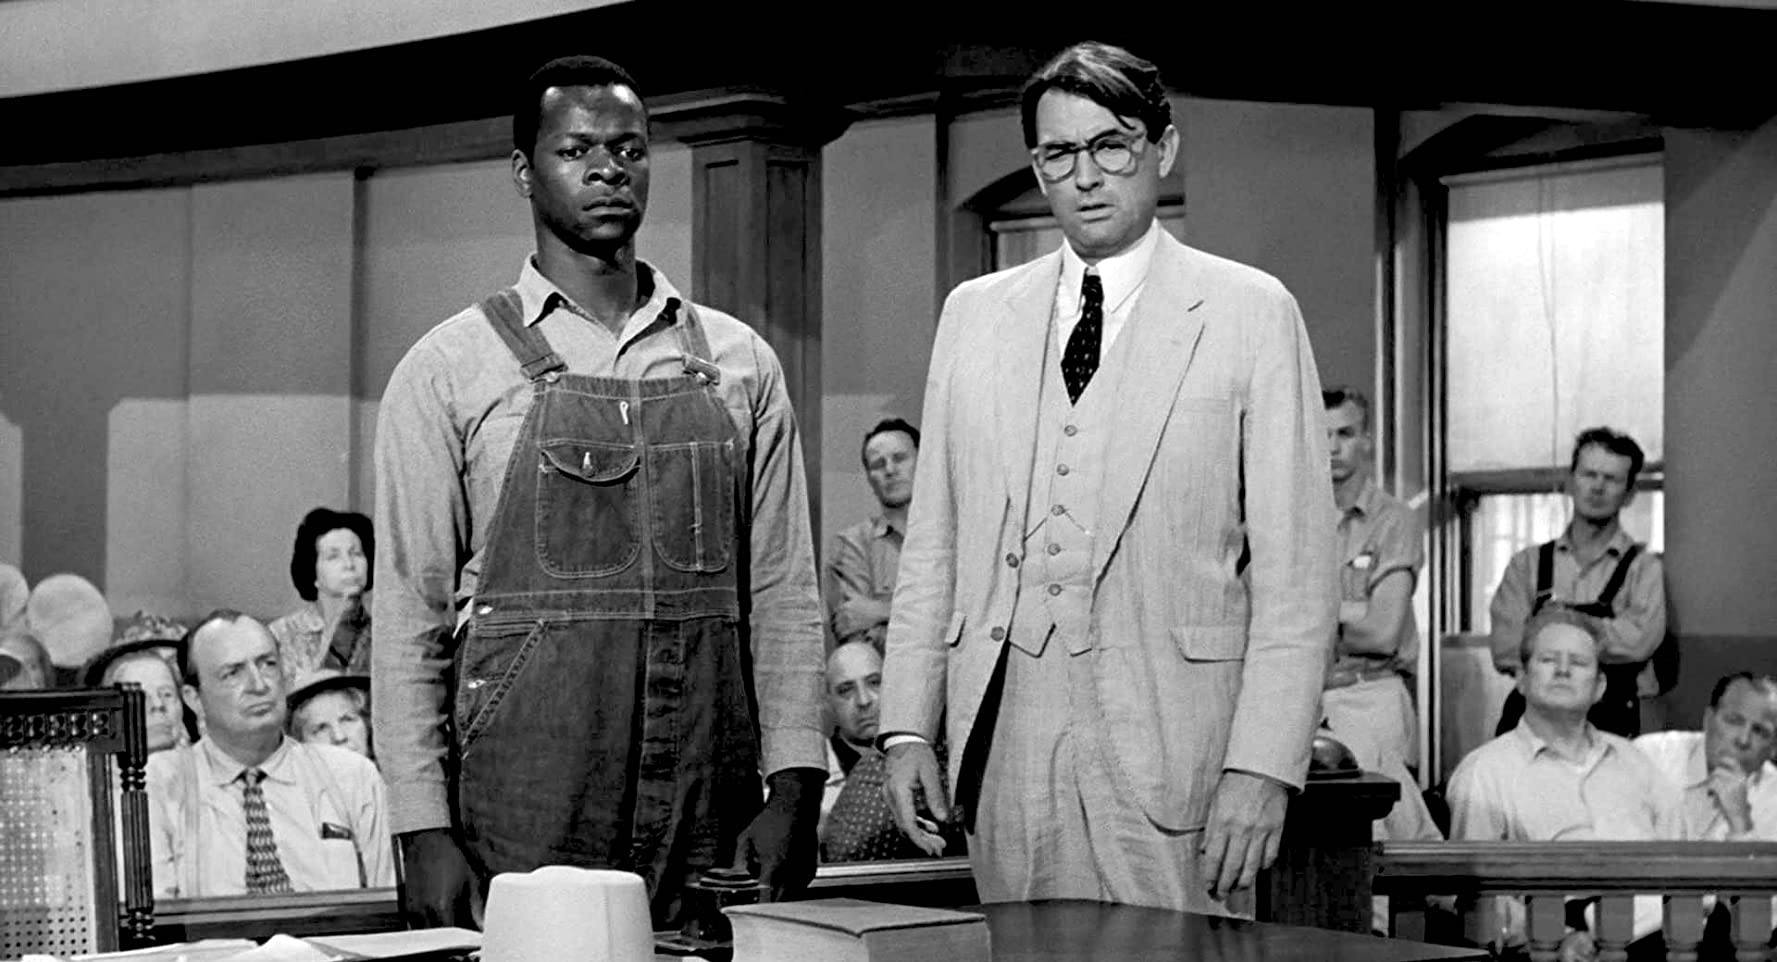 Gregory Peck and Brock Peters in To Kill a Mockingbird 1962